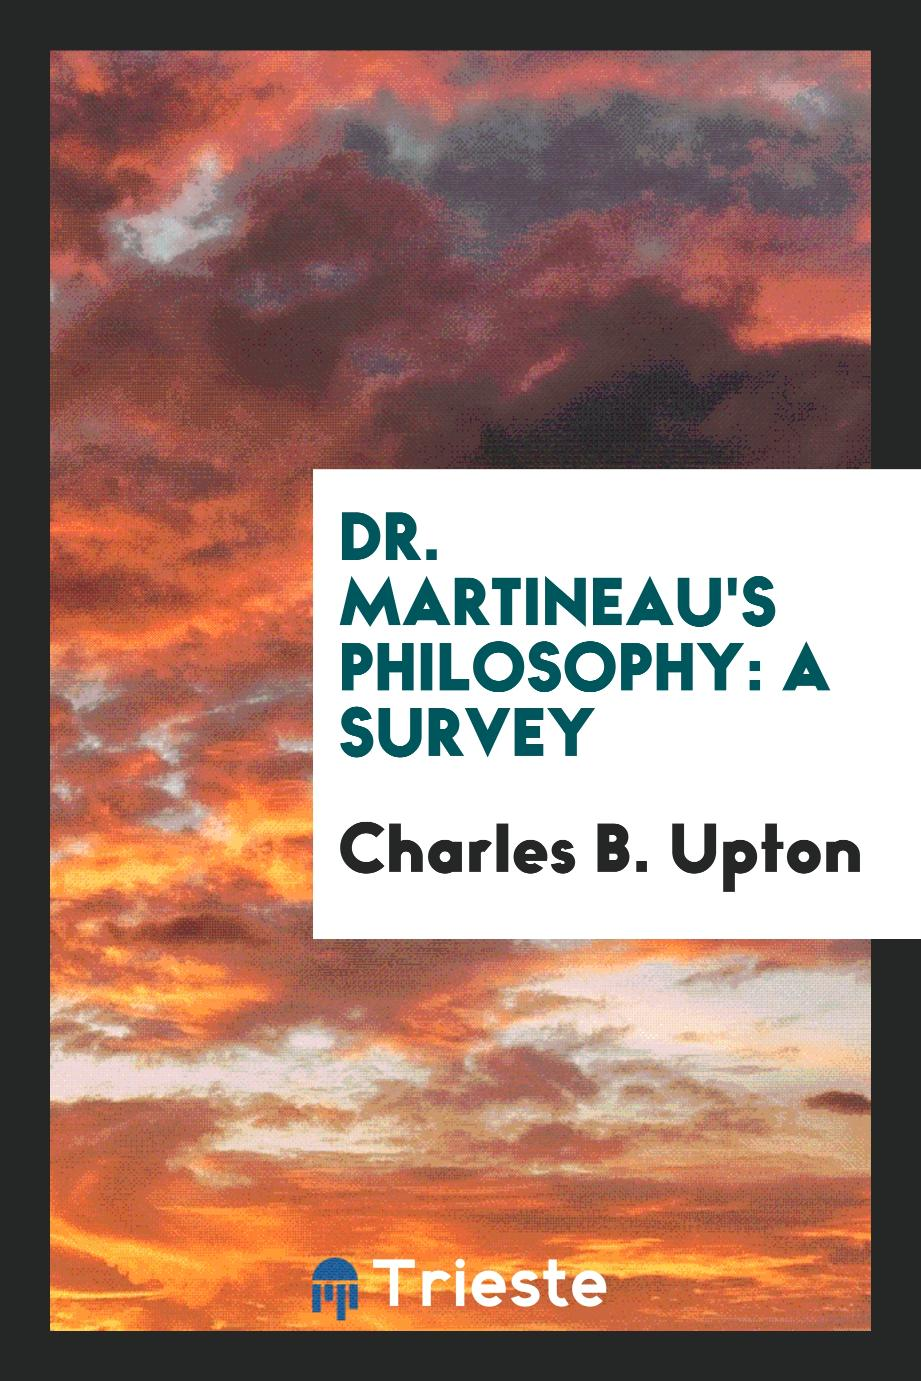 Dr. Martineau's Philosophy: A Survey